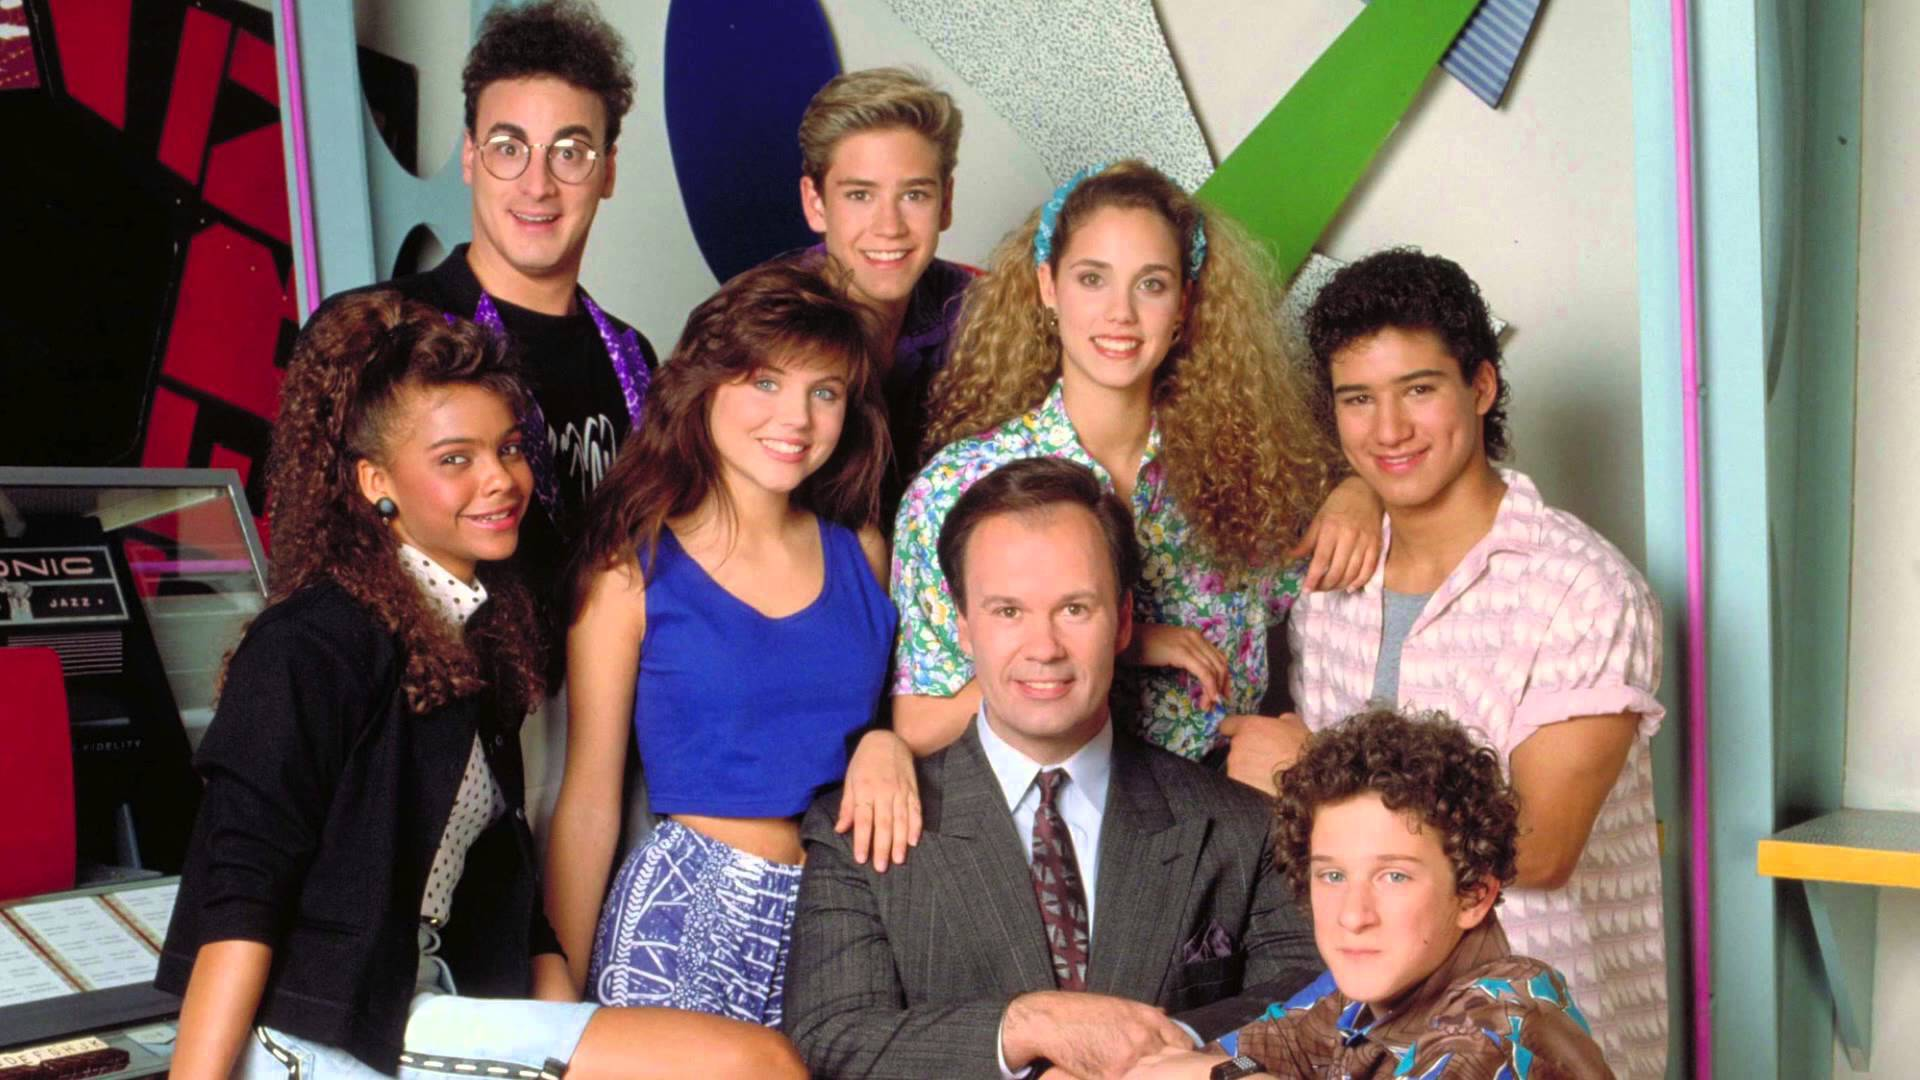 A 'Saved By The Bell' pop-up is coming to Chicago this June